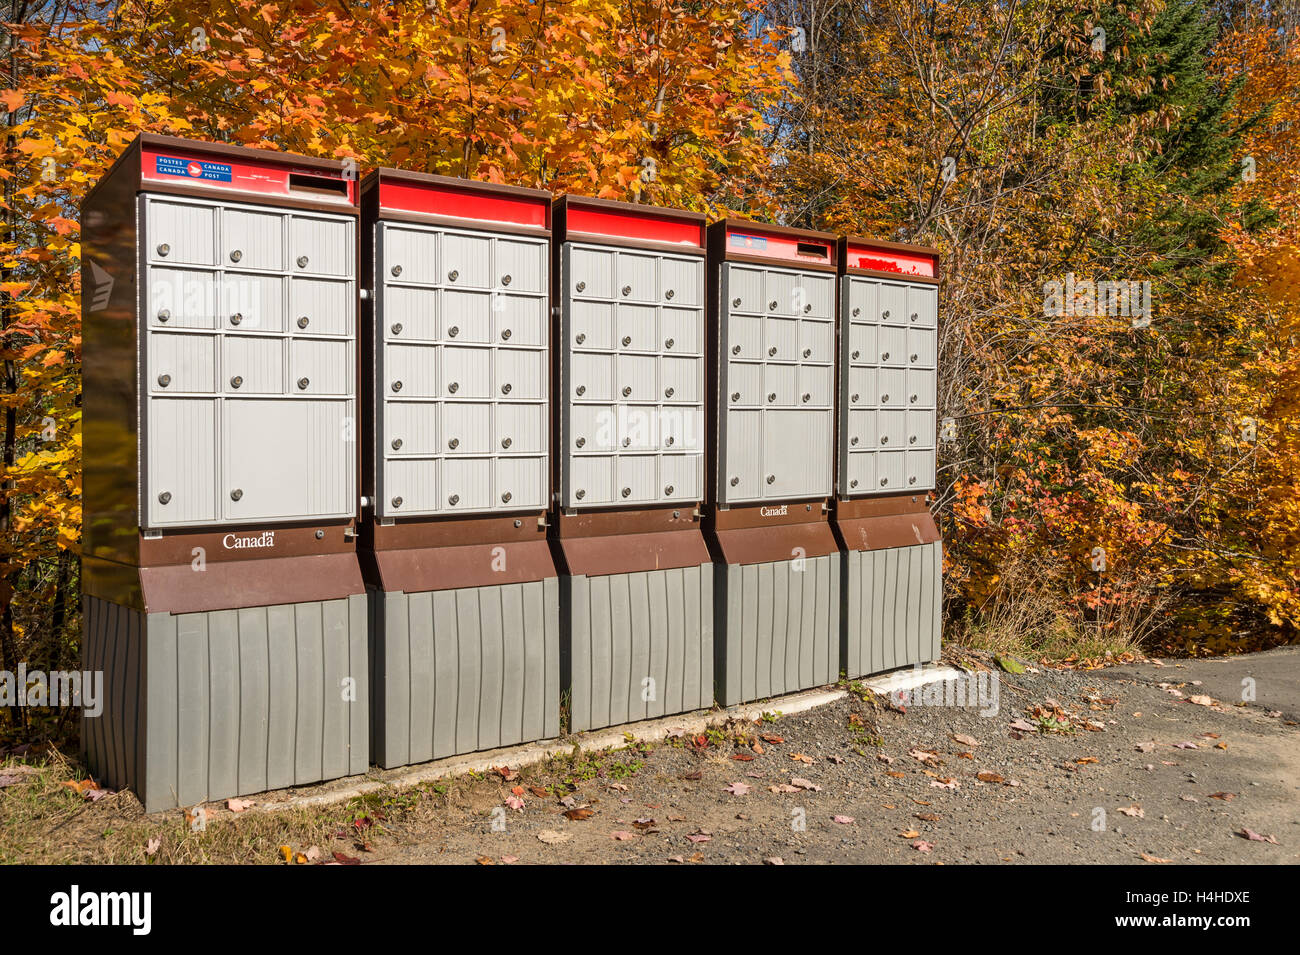 Rural Canada Post Mailboxes In Laurentides, QC, CANADA,  in Autumn - Stock Image